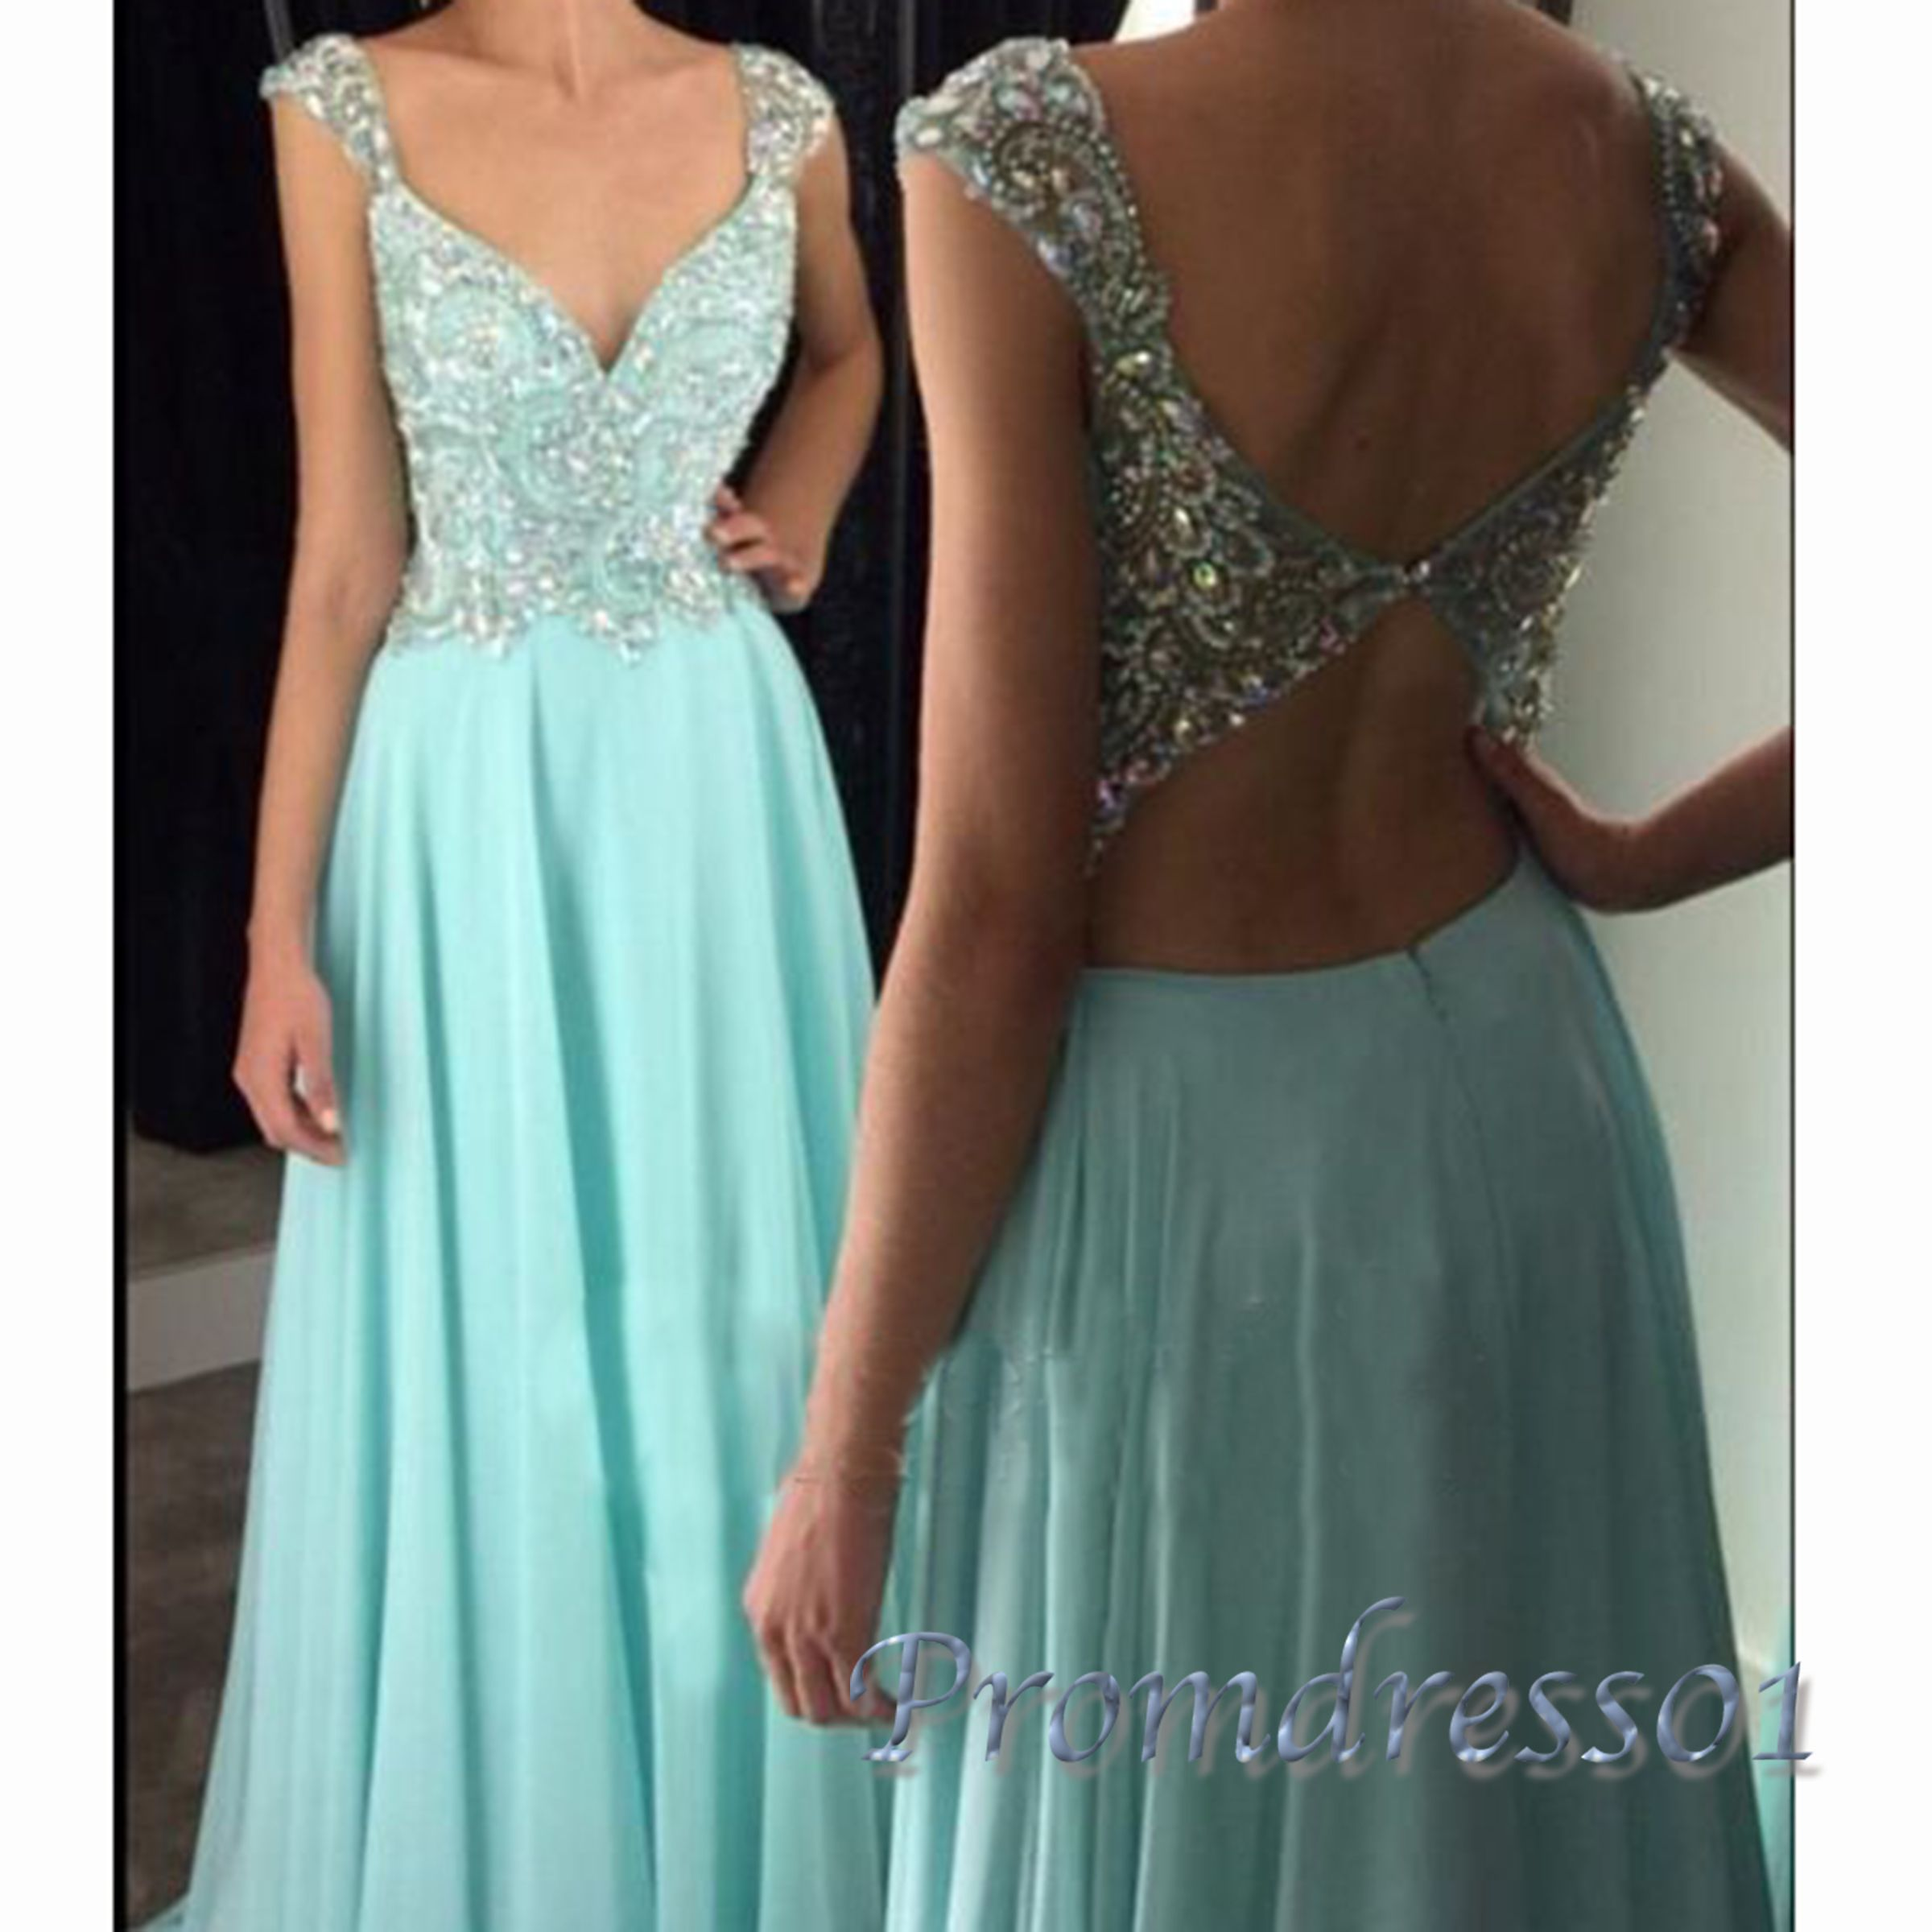 Cute ice blue chiffon vneck long prom dress with straps ball gown